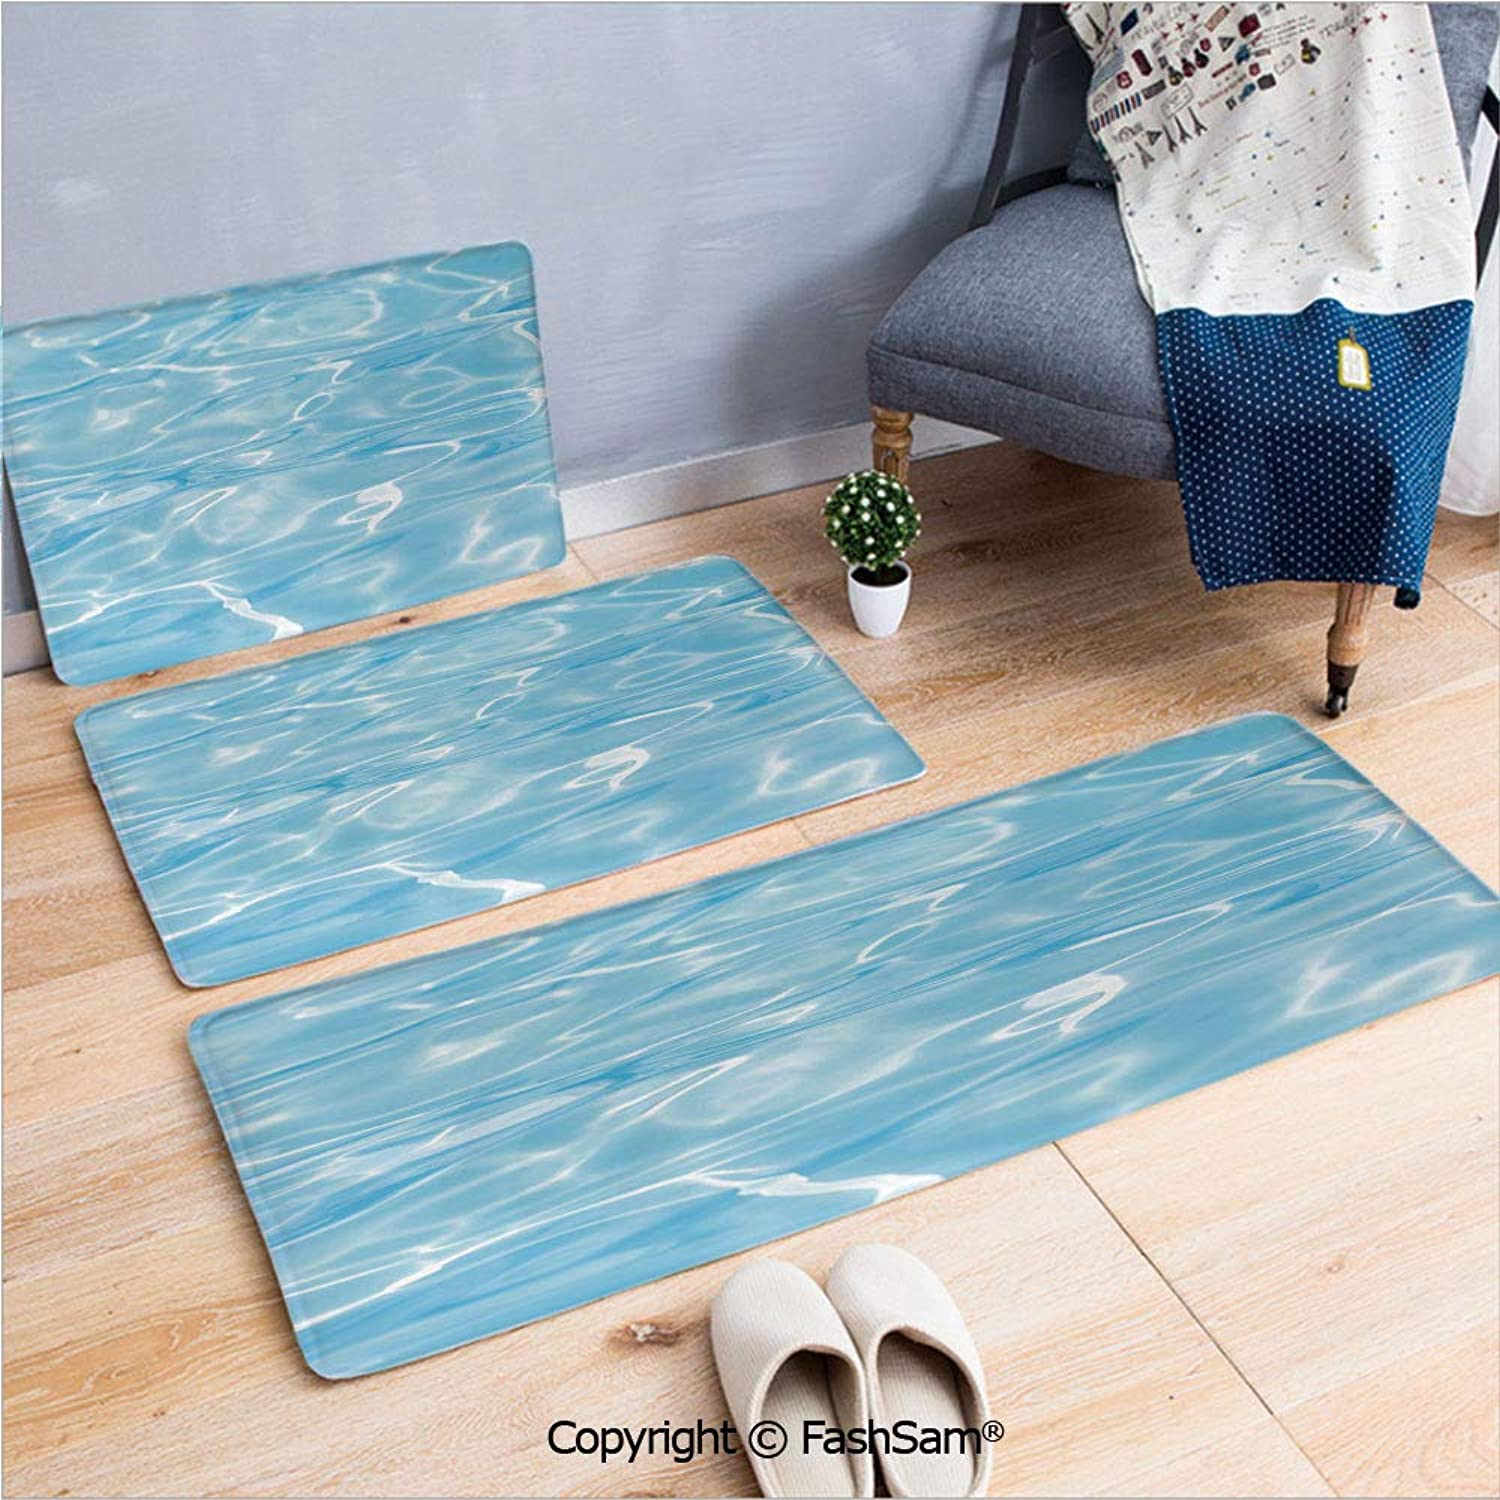 FashSam 3 Piece Flannel Doormat Swimming Pool Ocean Sea Surface with Sun Reflection Geometrical Shapes Print for Kitchen Rugs Carpet(W15.7xL23.6 by W19.6xL31.5 by W31.4xL47.2) iqaerq3975017